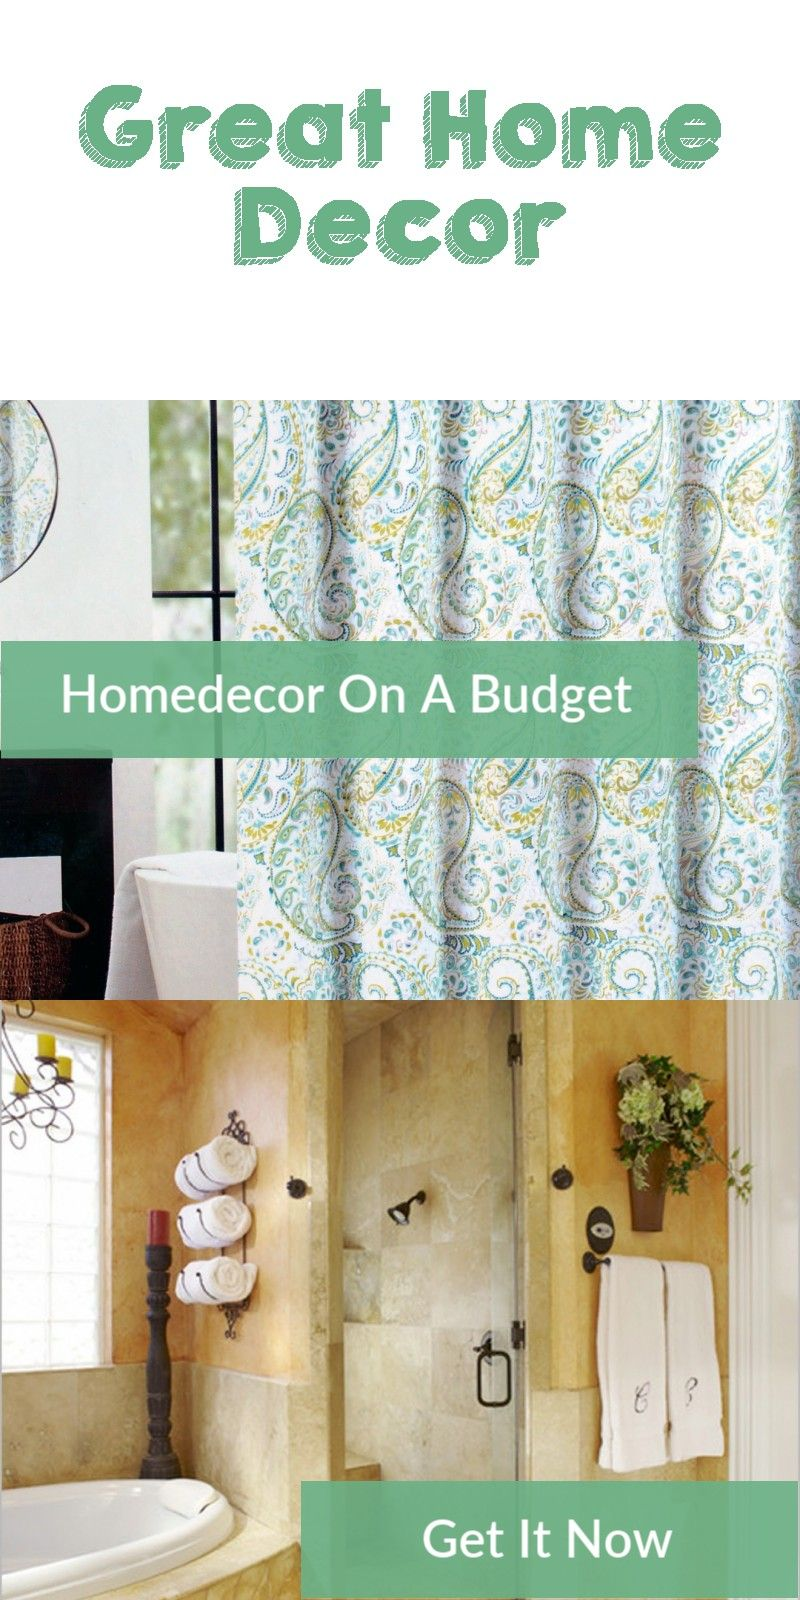 Interior design ideas easy things that you could do to improve your home   check out this great article also rh pinterest